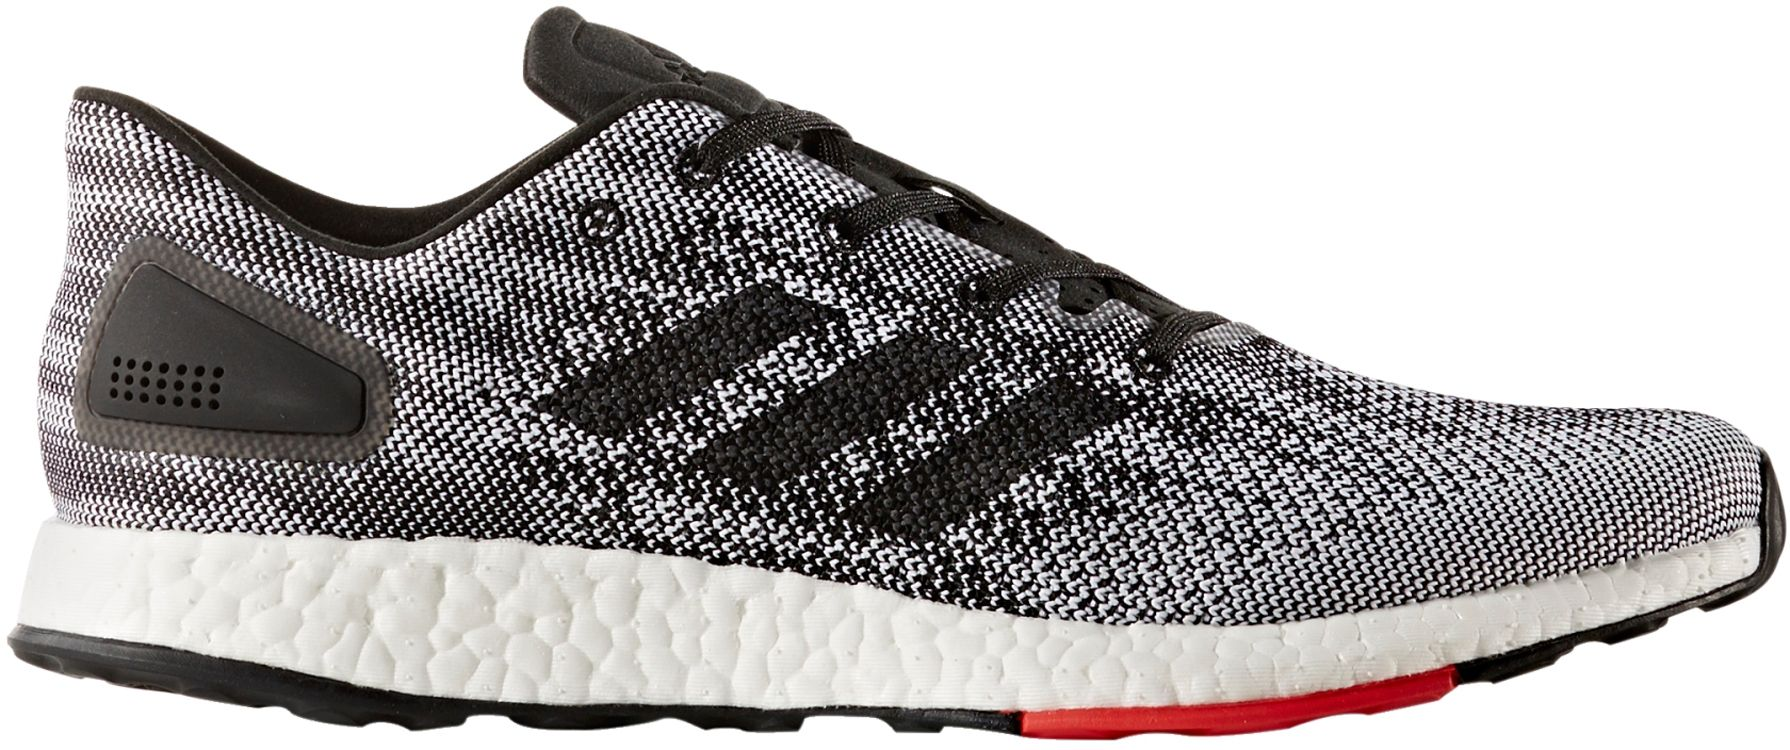 adidas pure boost mens